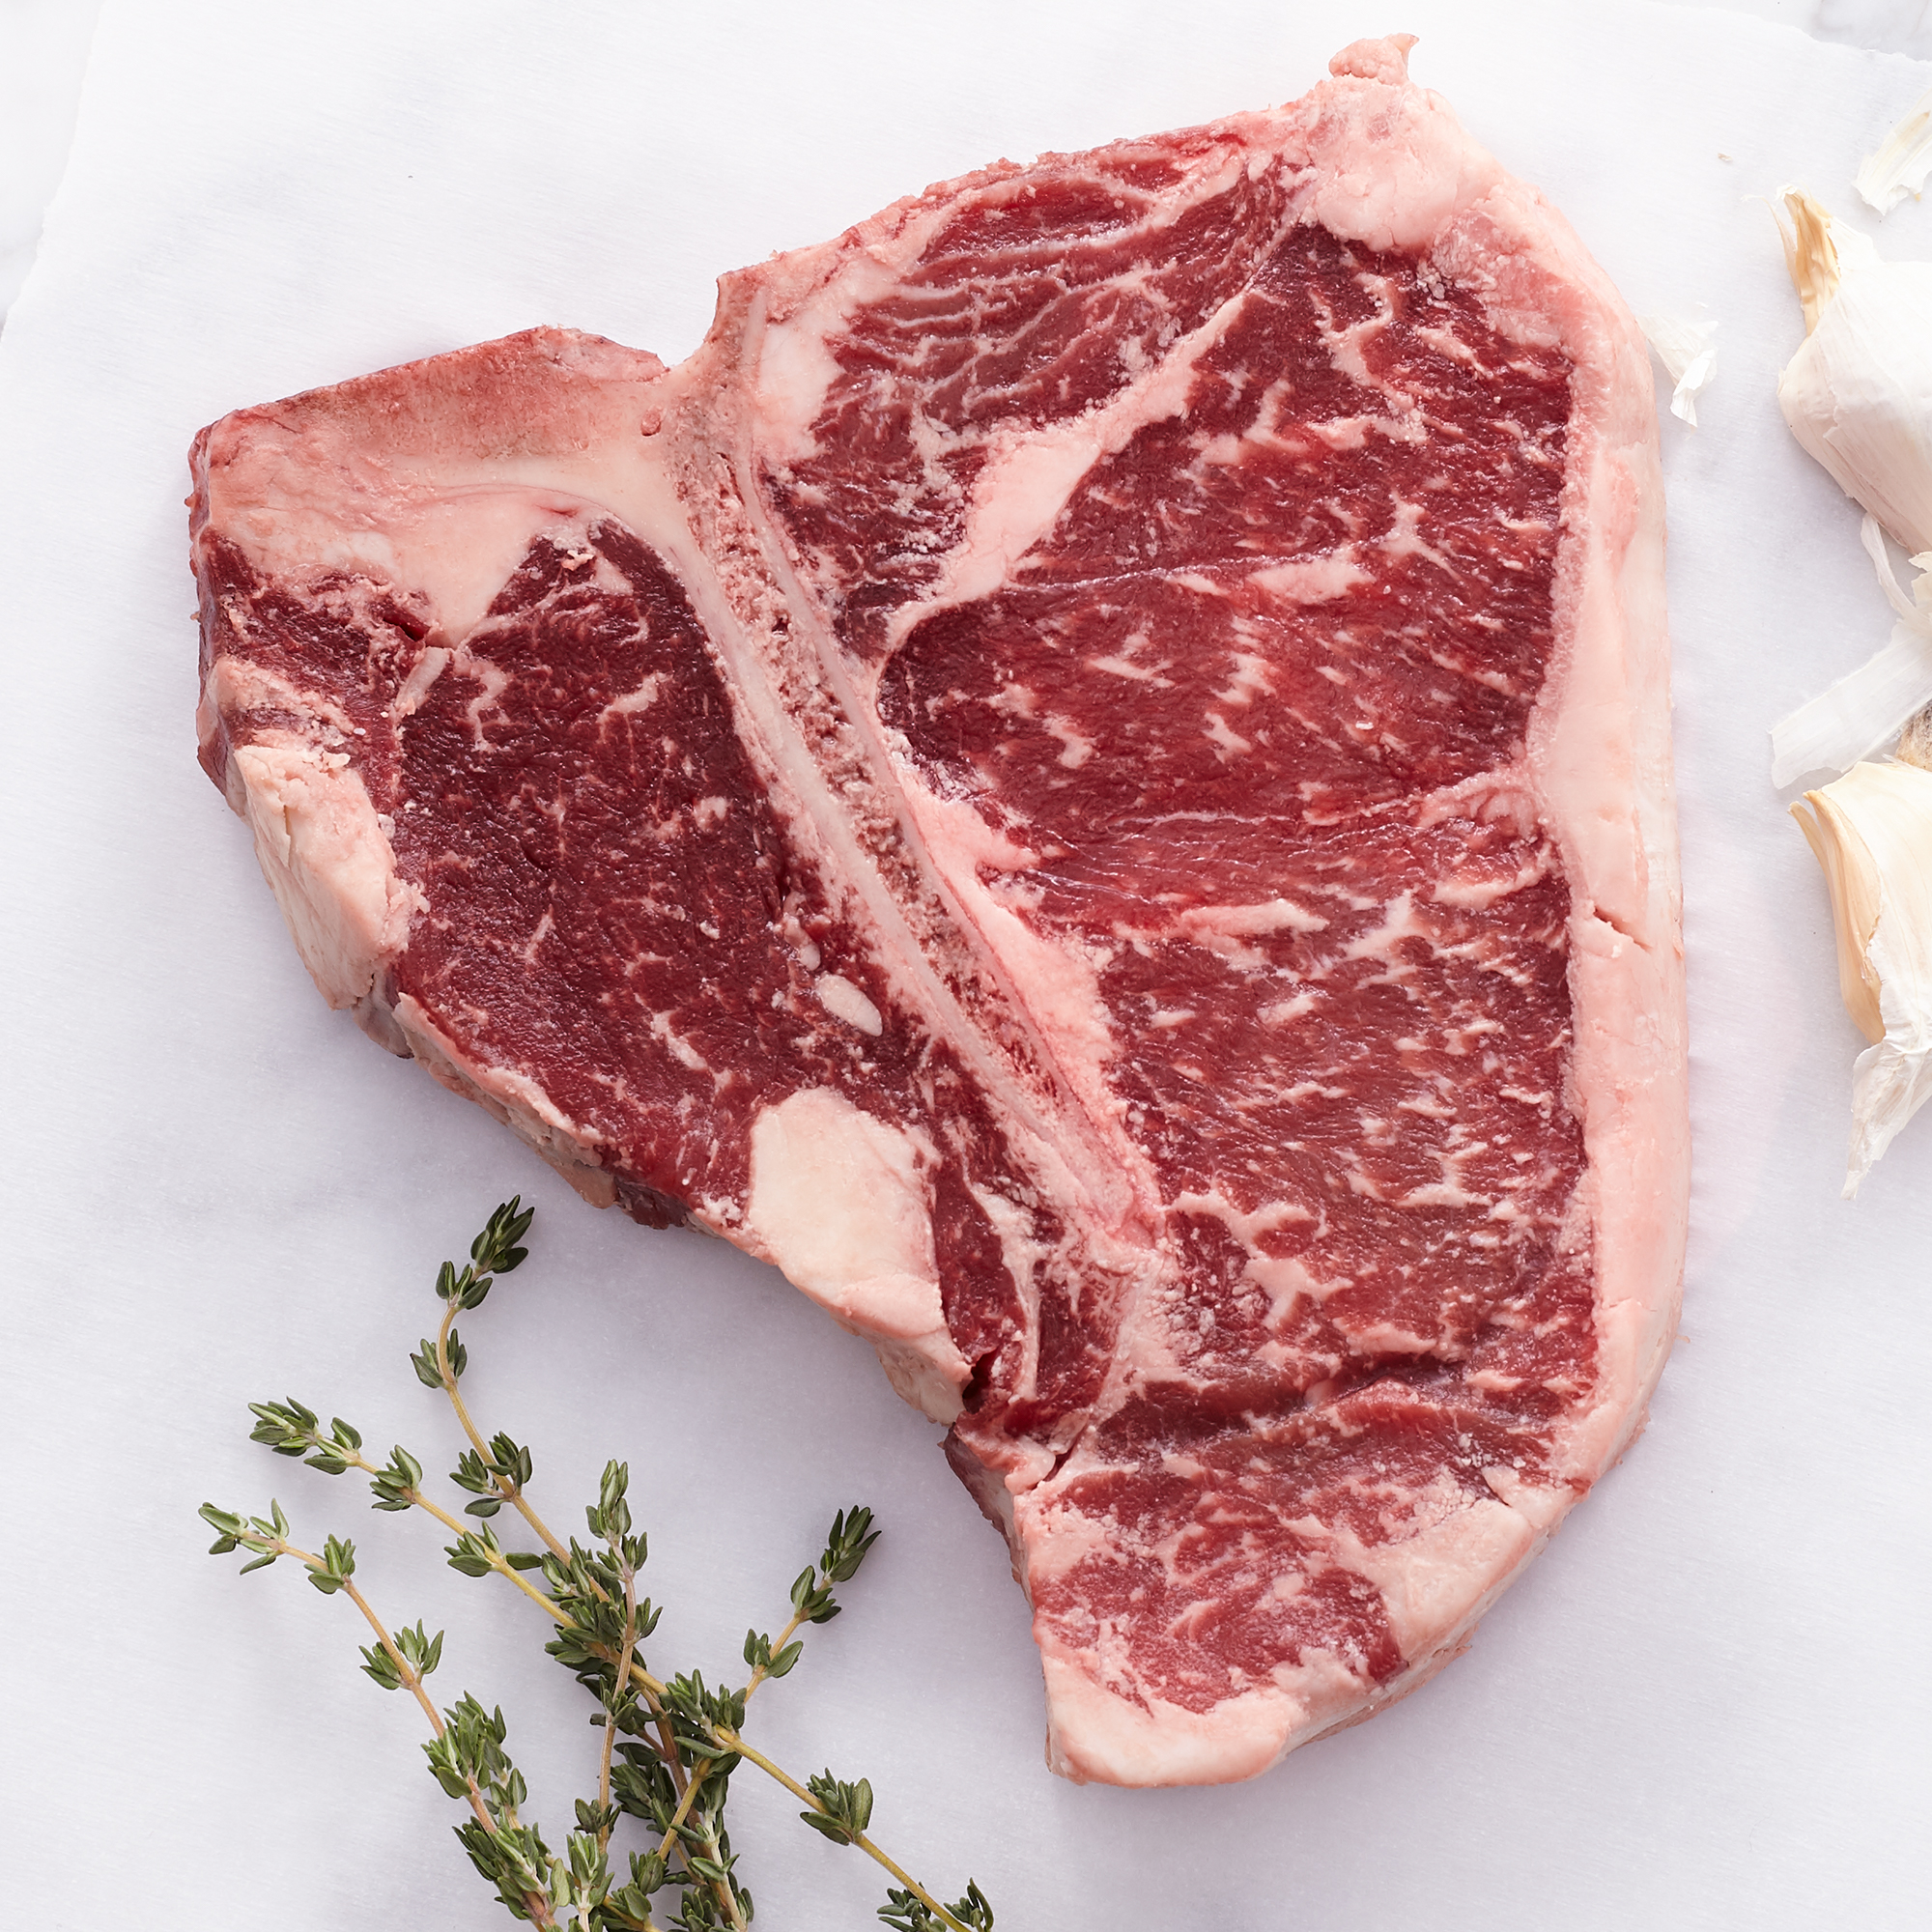 (4) 16 oz. Porterhouse Premium Steaks - ships frozen and raw